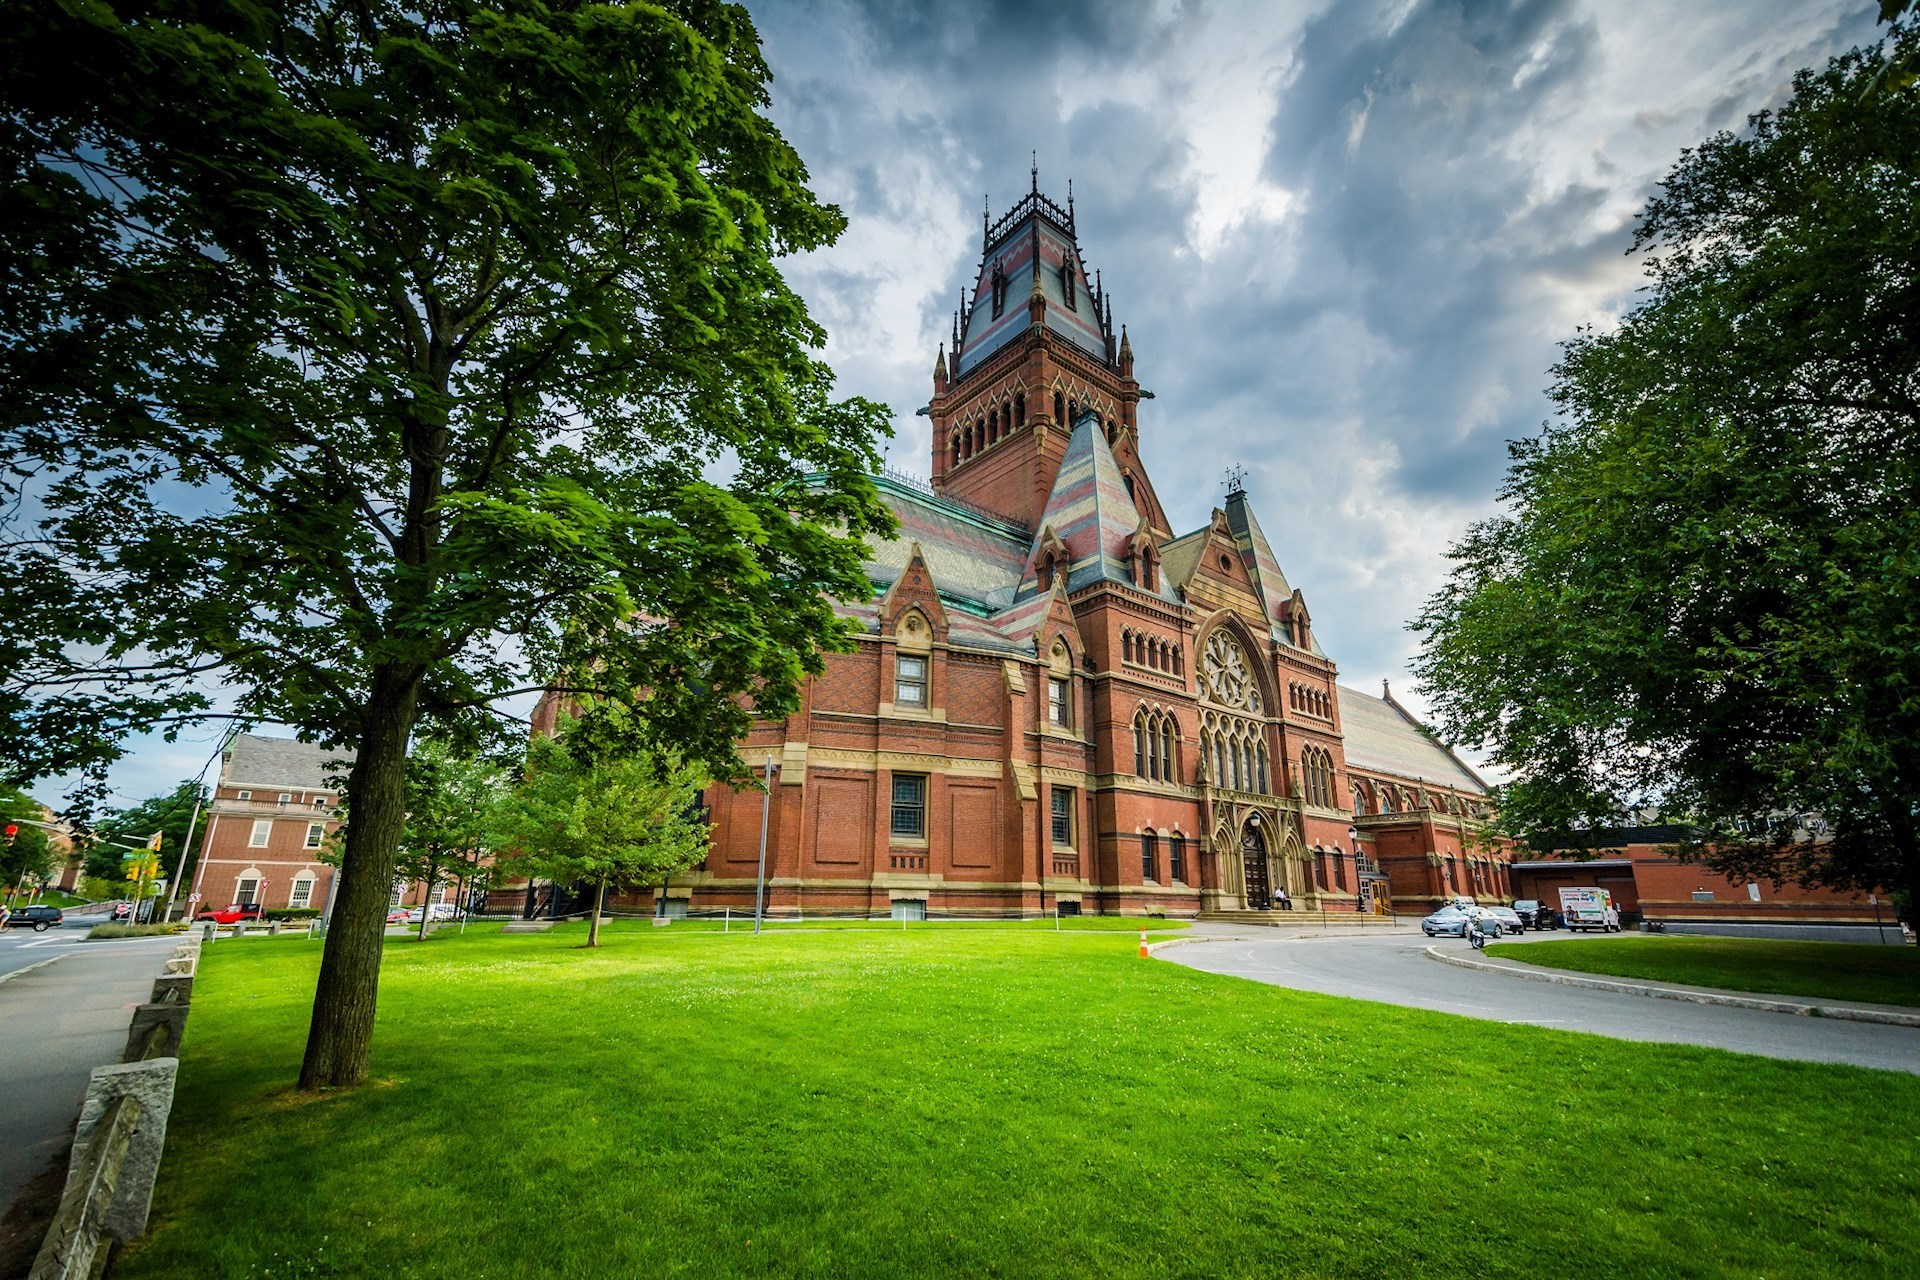 Ivy League College Admission Requirements & How to Get In